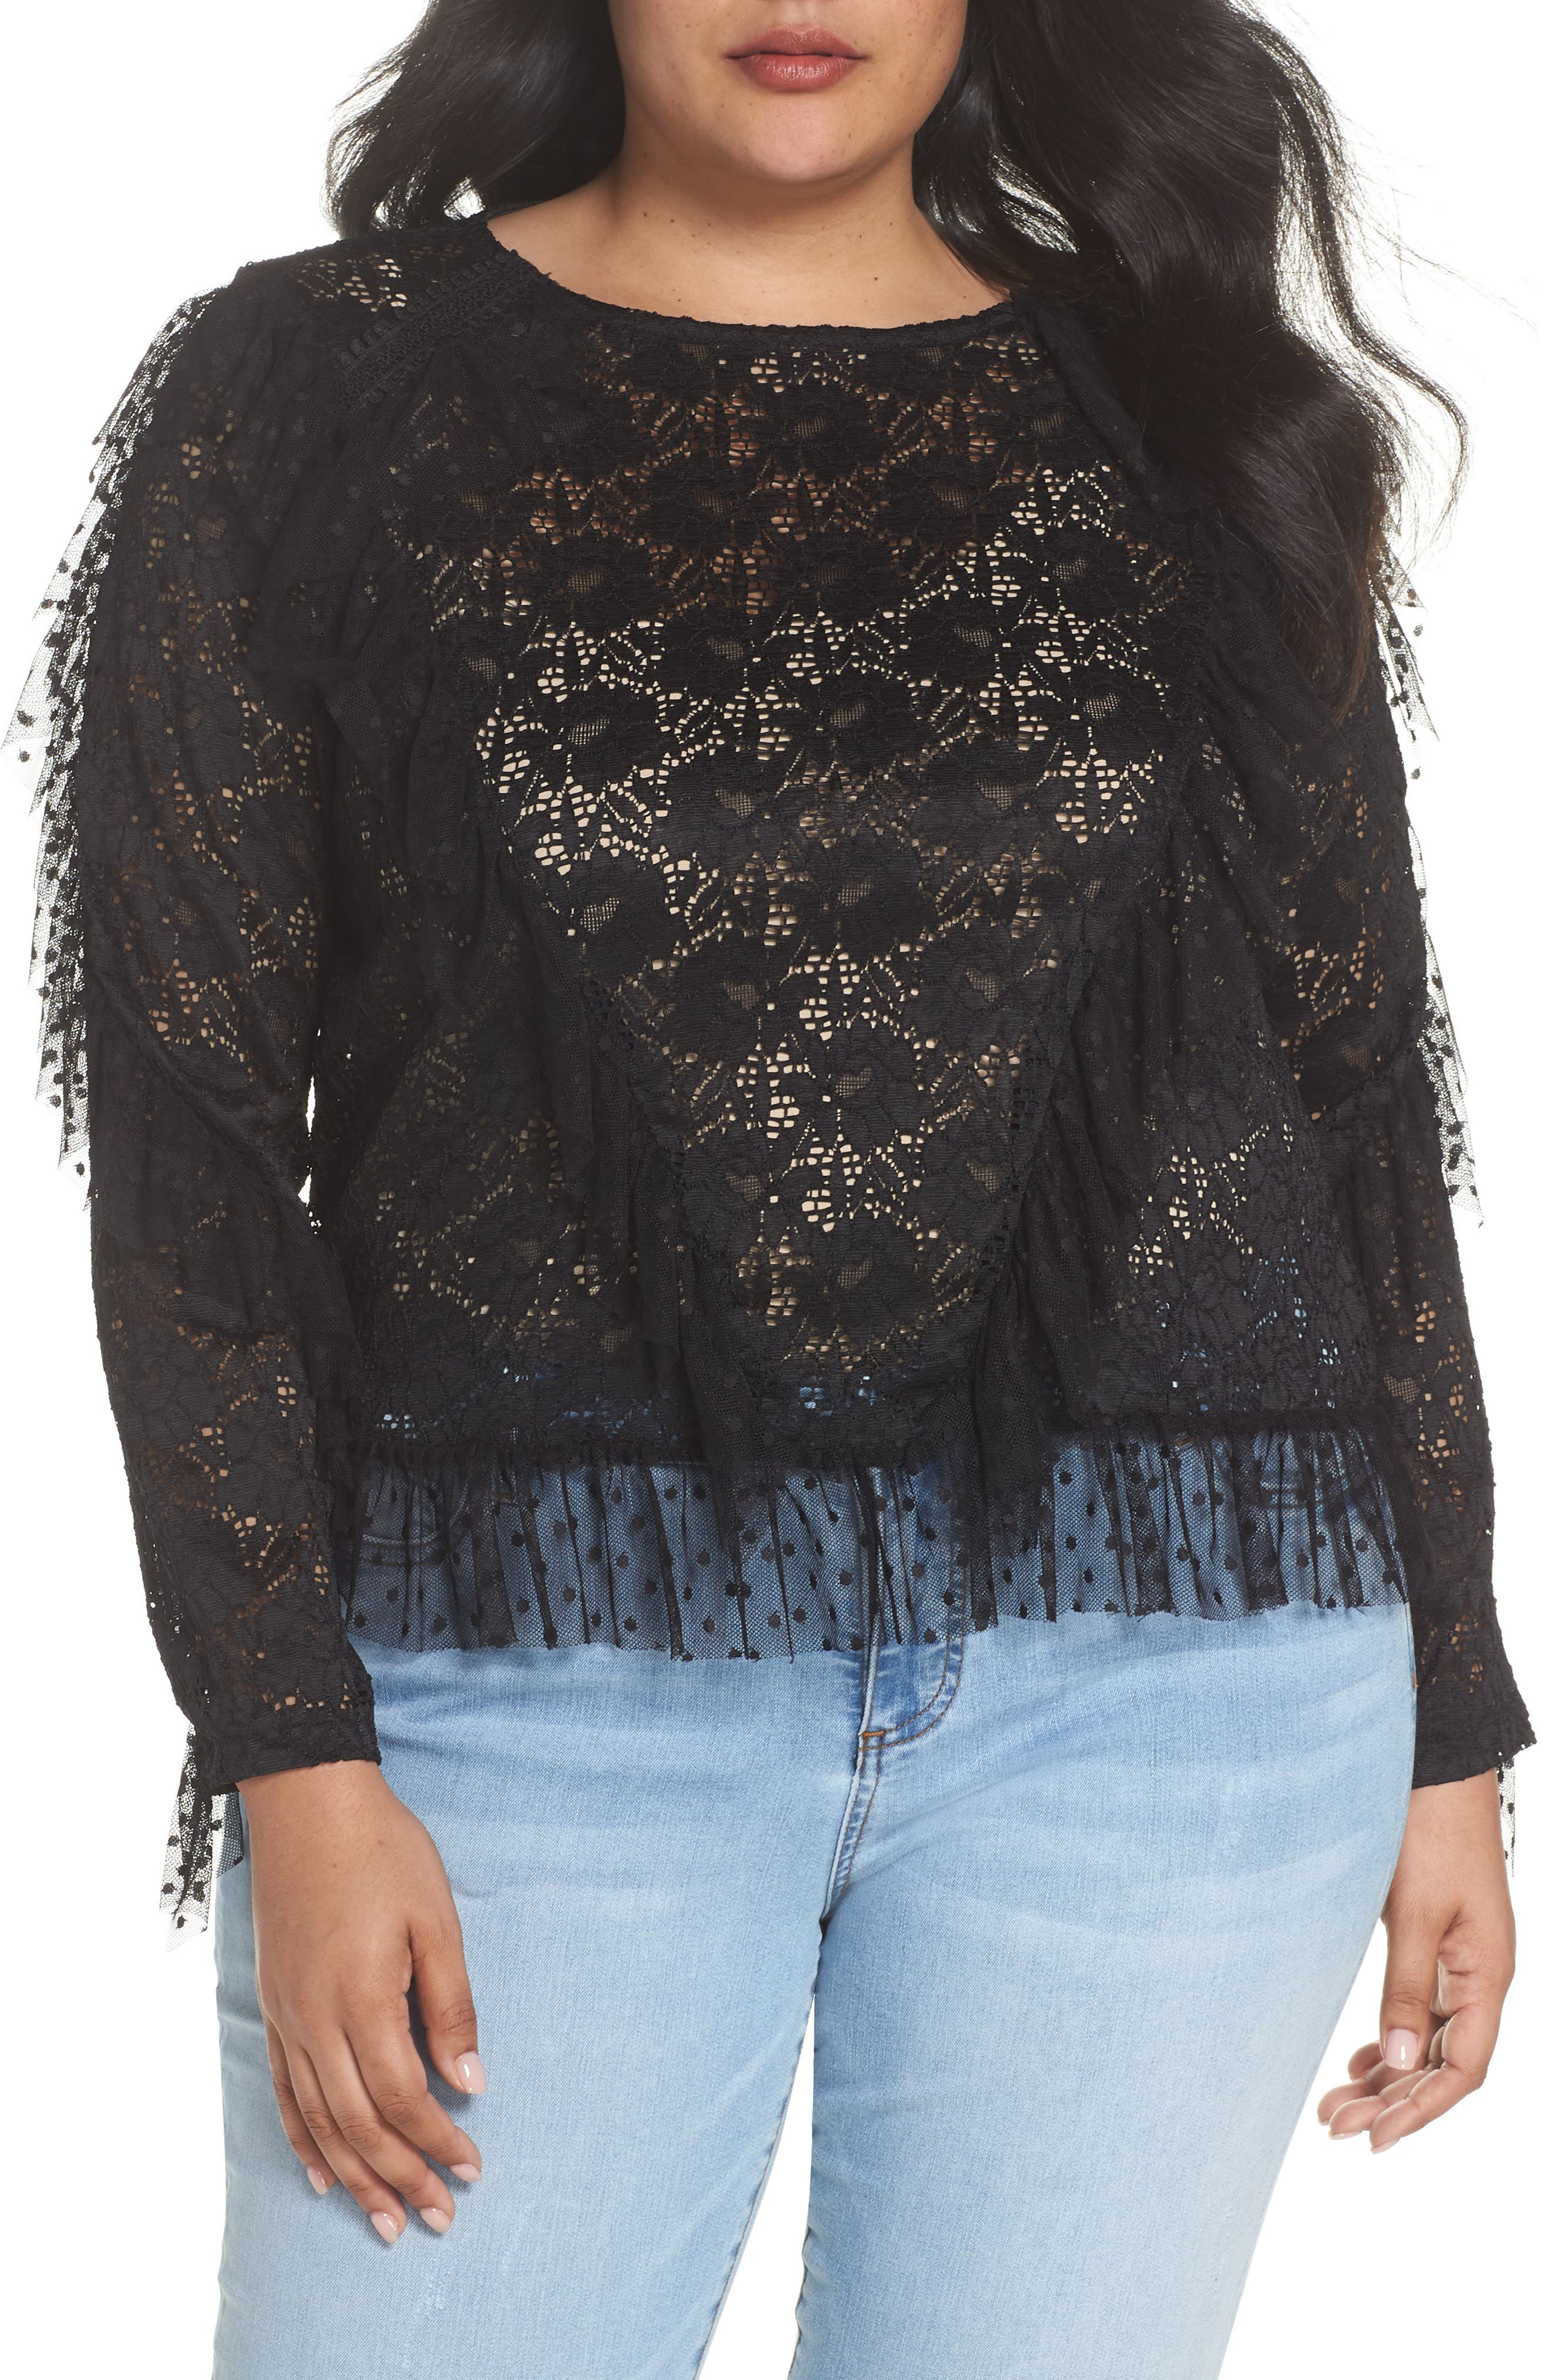 LOST INK Ruffle Trim Lace Top (Plus Size)